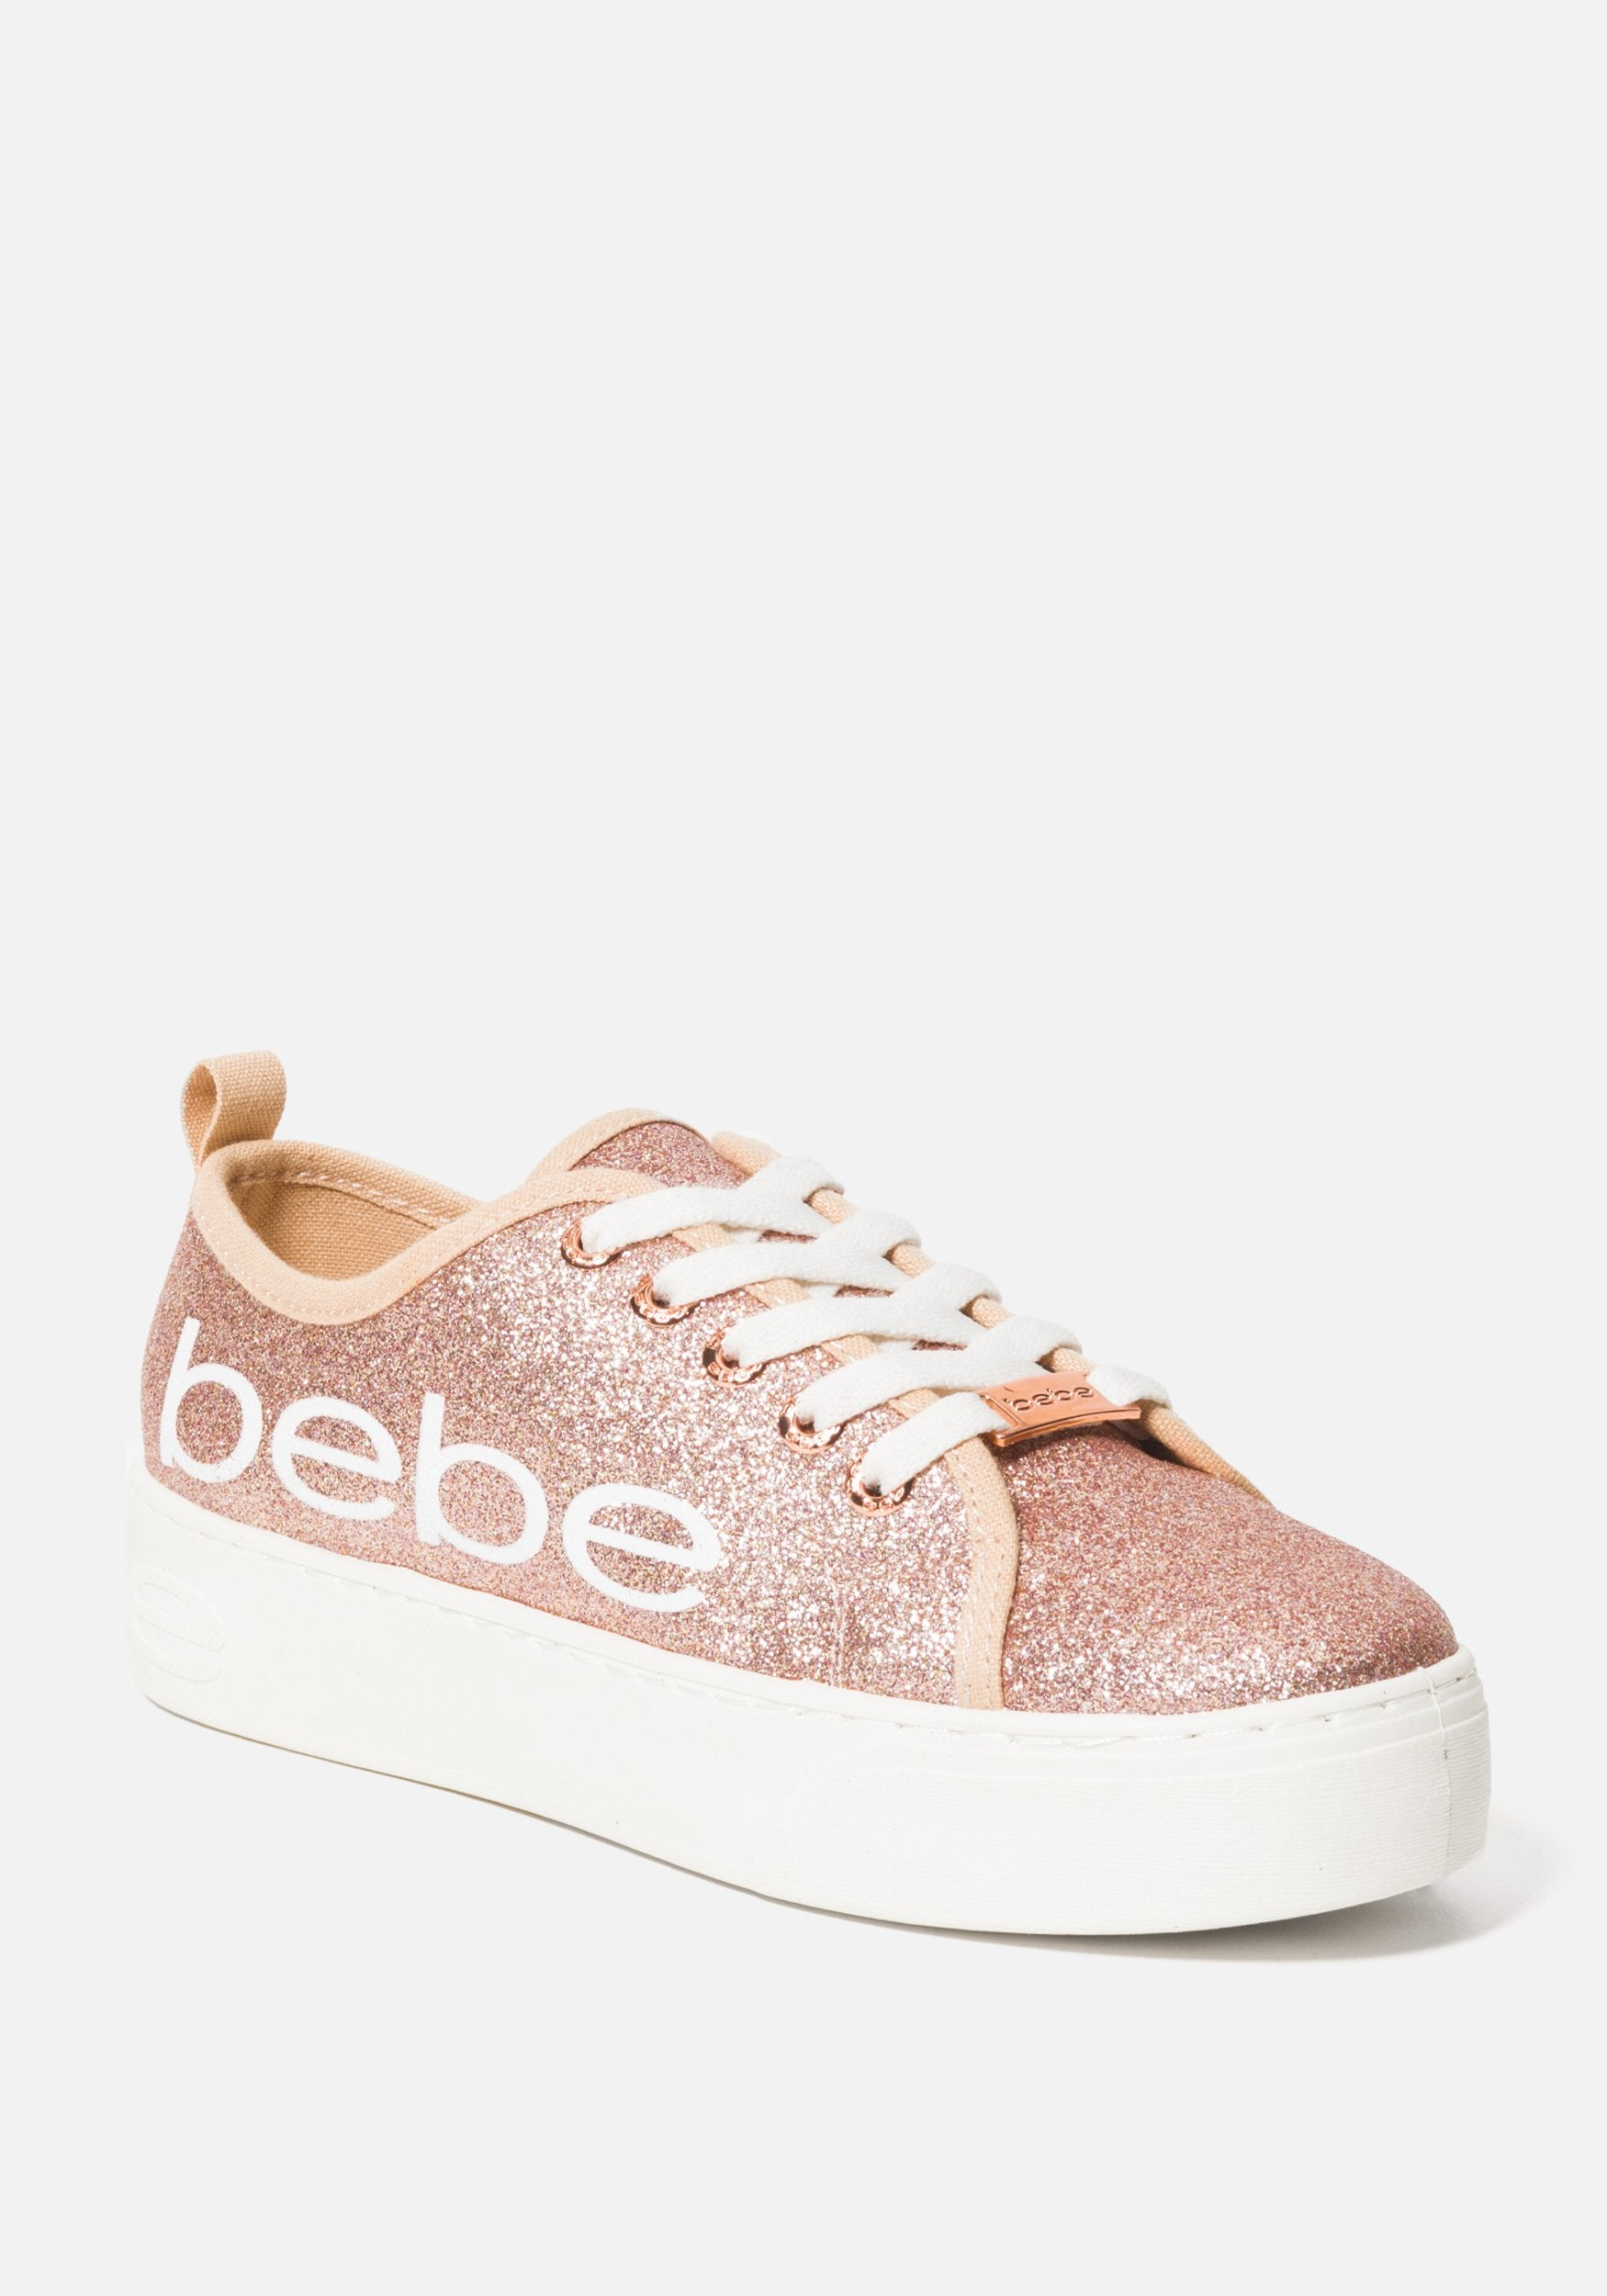 Women's Dovie Bebe Logo Sneakers, Size 6 in ROSE GOLD GLITTER Synthetic